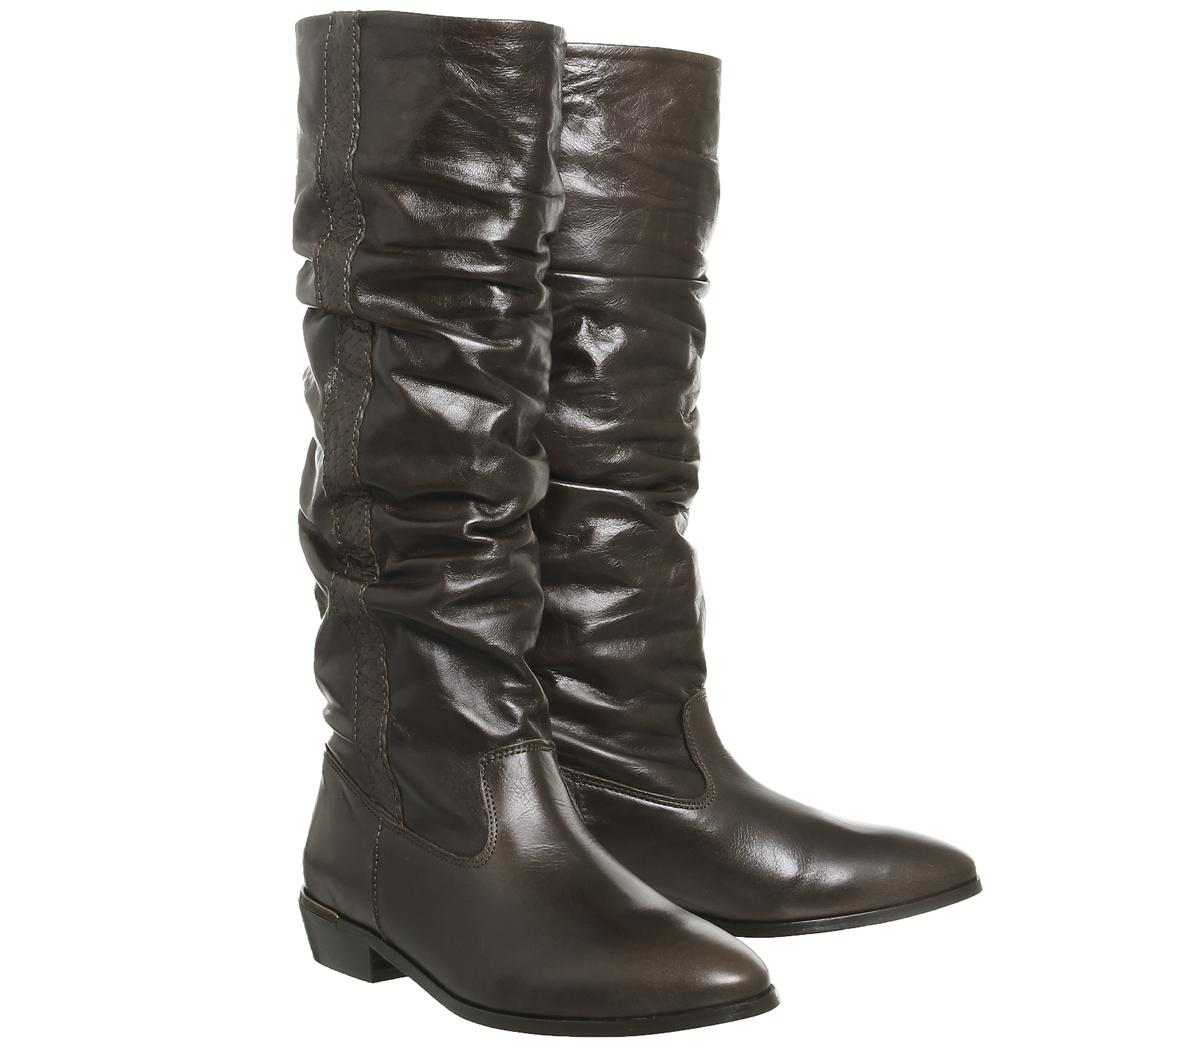 Office Leather Kansas Vintage Knee Boots in Brown